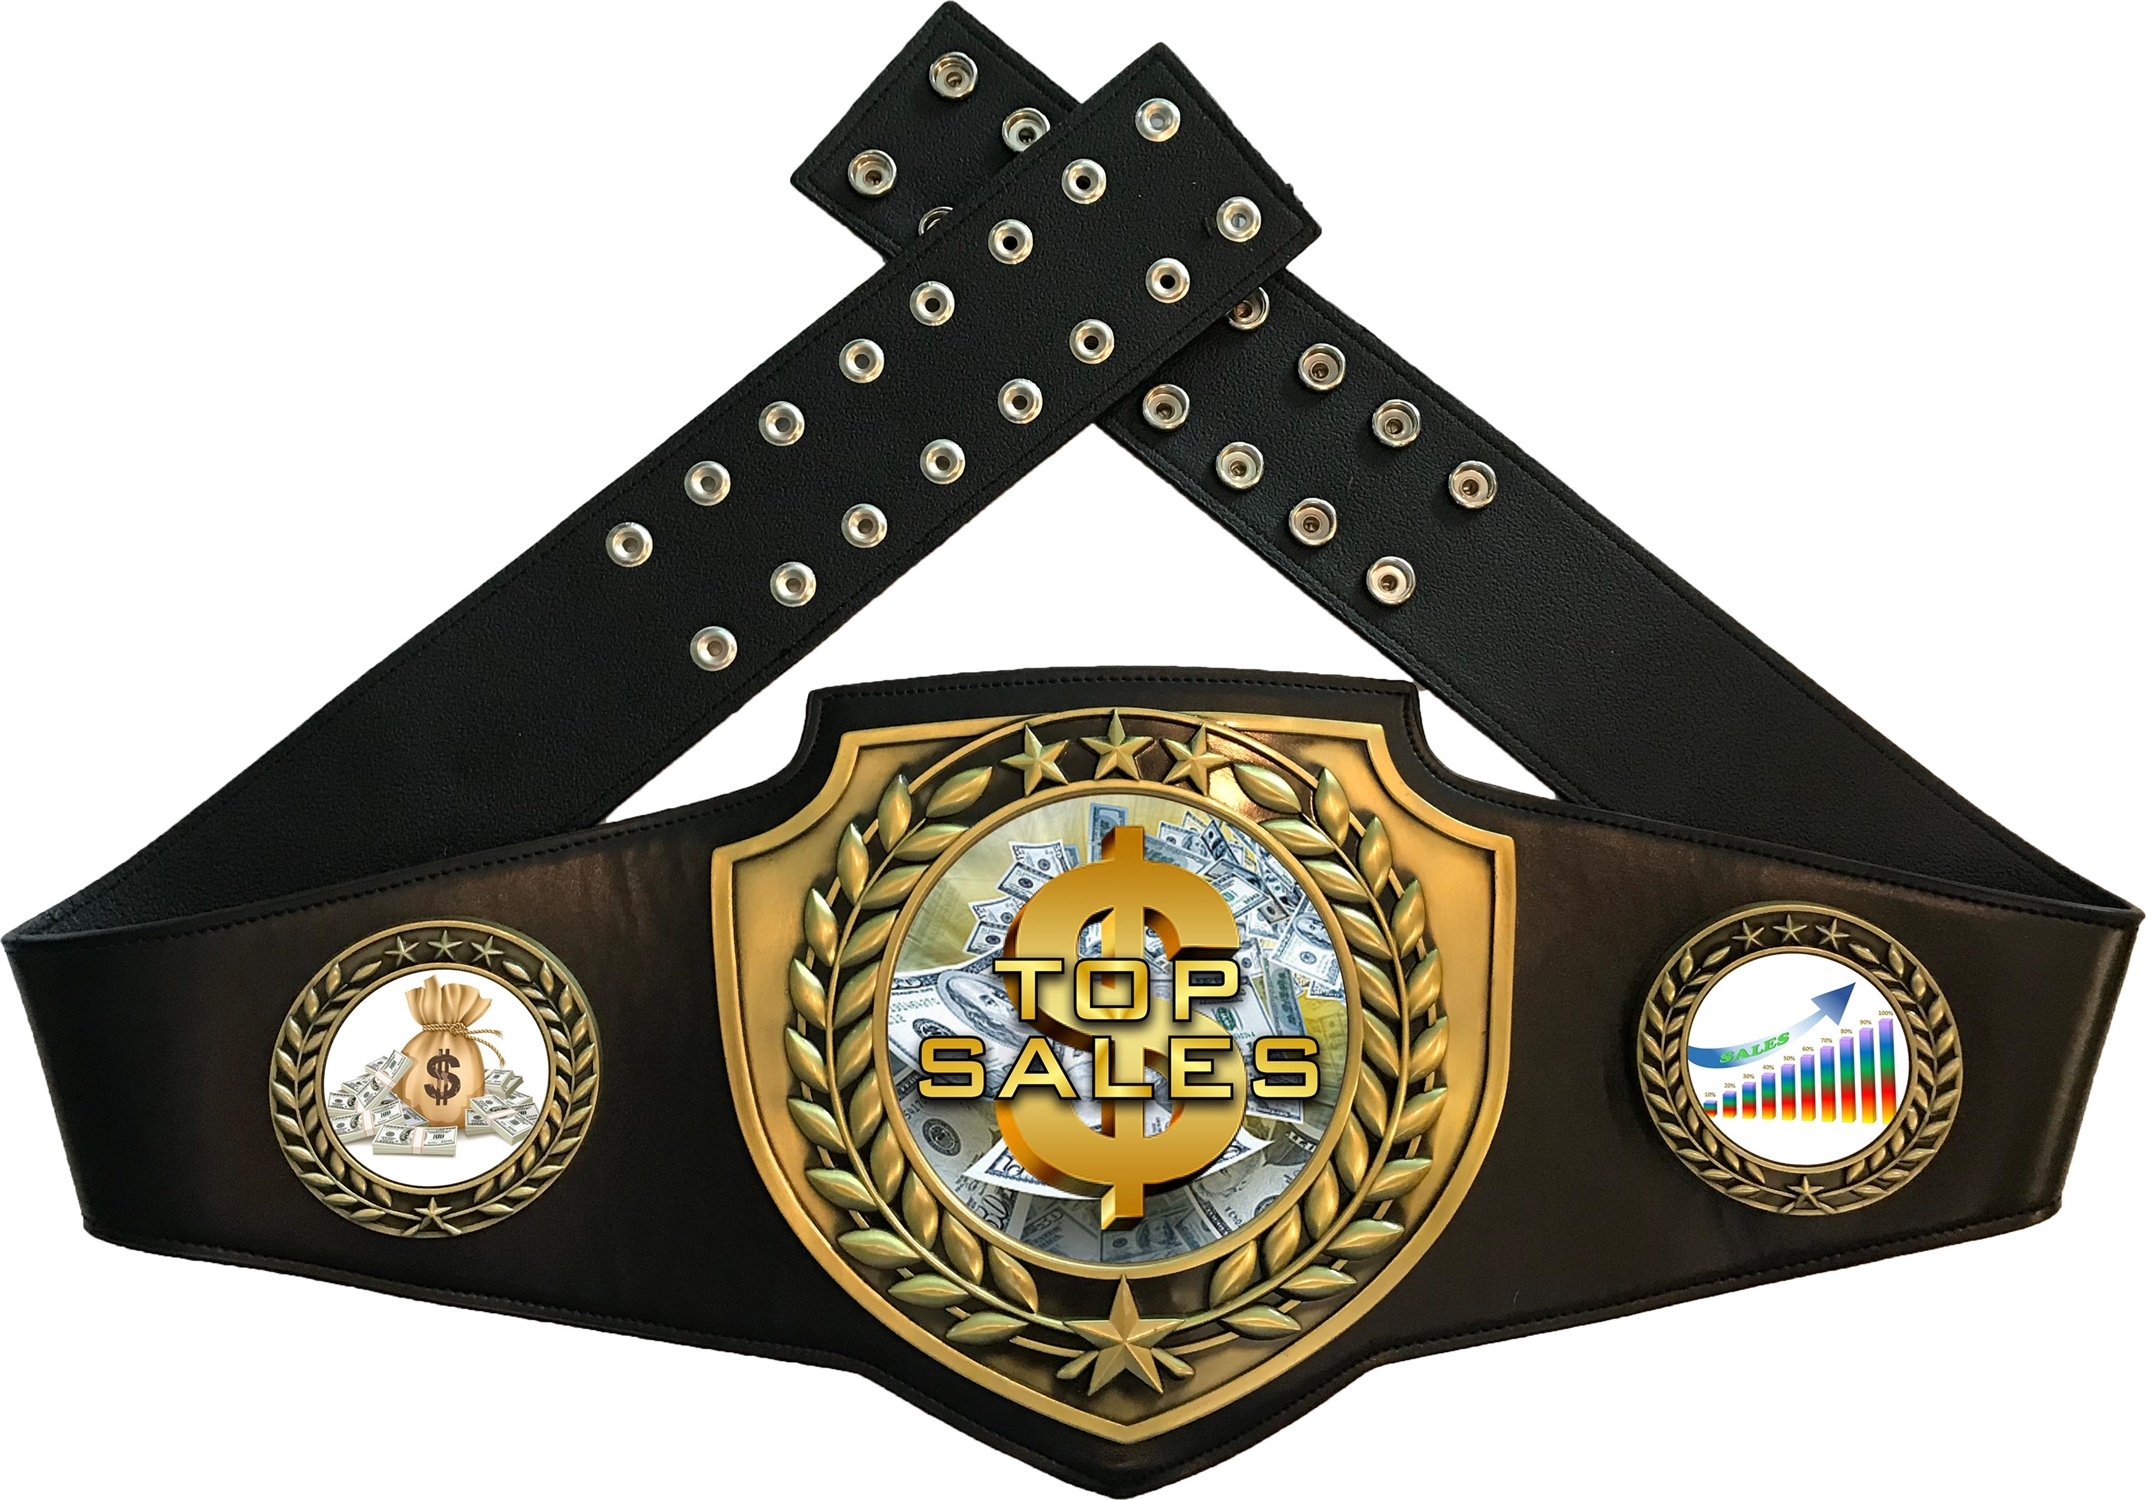 Top Sales Championship Award Belt EMCABTS